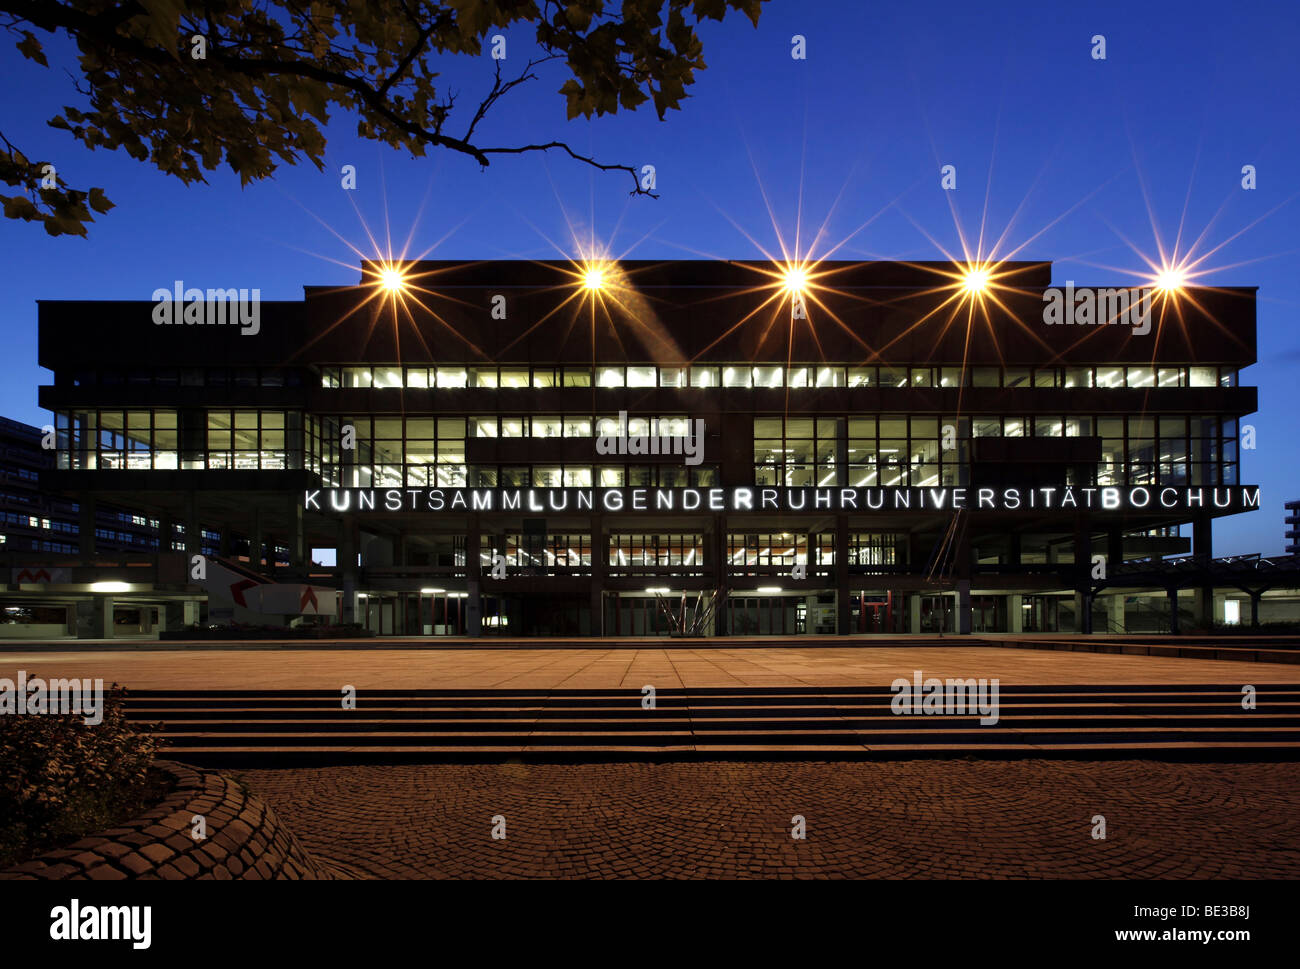 Building containing the art collection from the Ruhr University Bochum, Bochum, Ruhr, North Rhine-Westphalia, Germany, - Stock Image